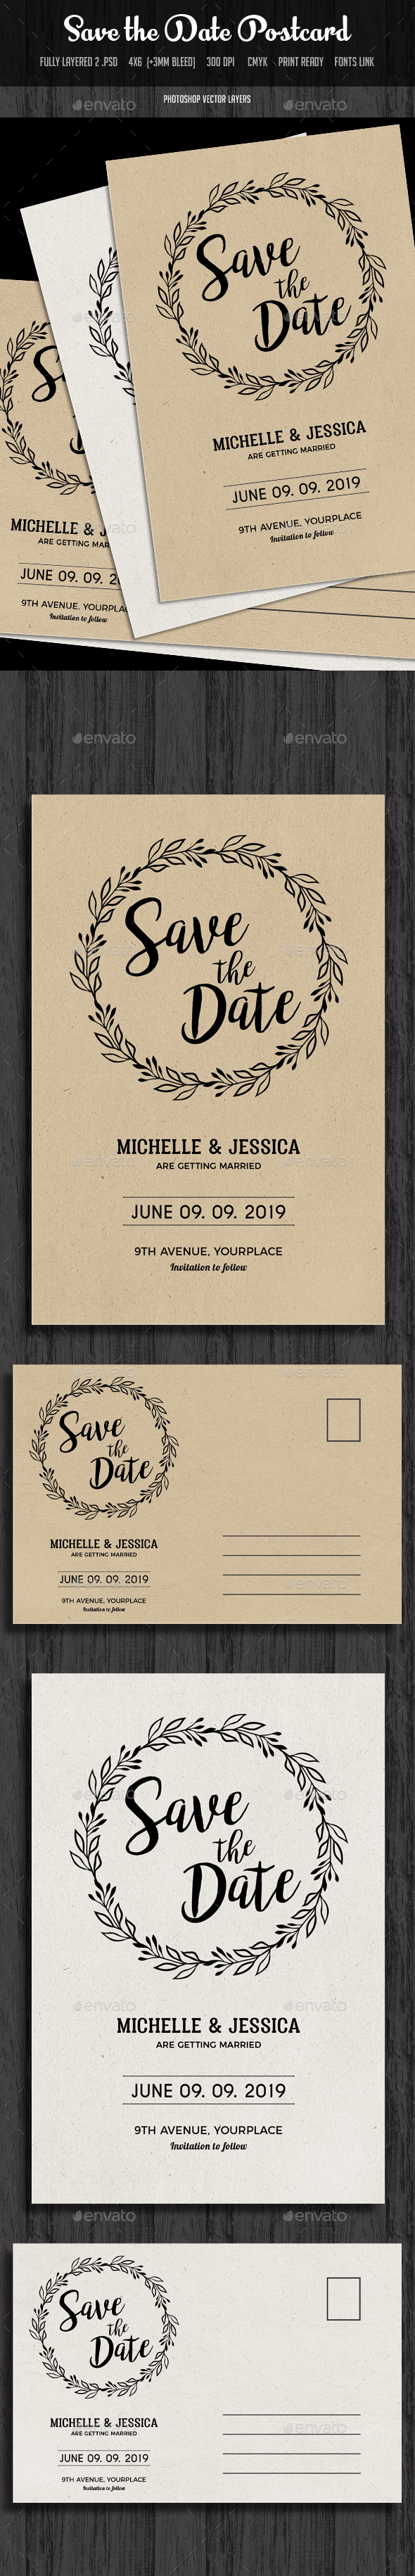 Save the Date Invitation Postcard - Cards & Invites Print Templates